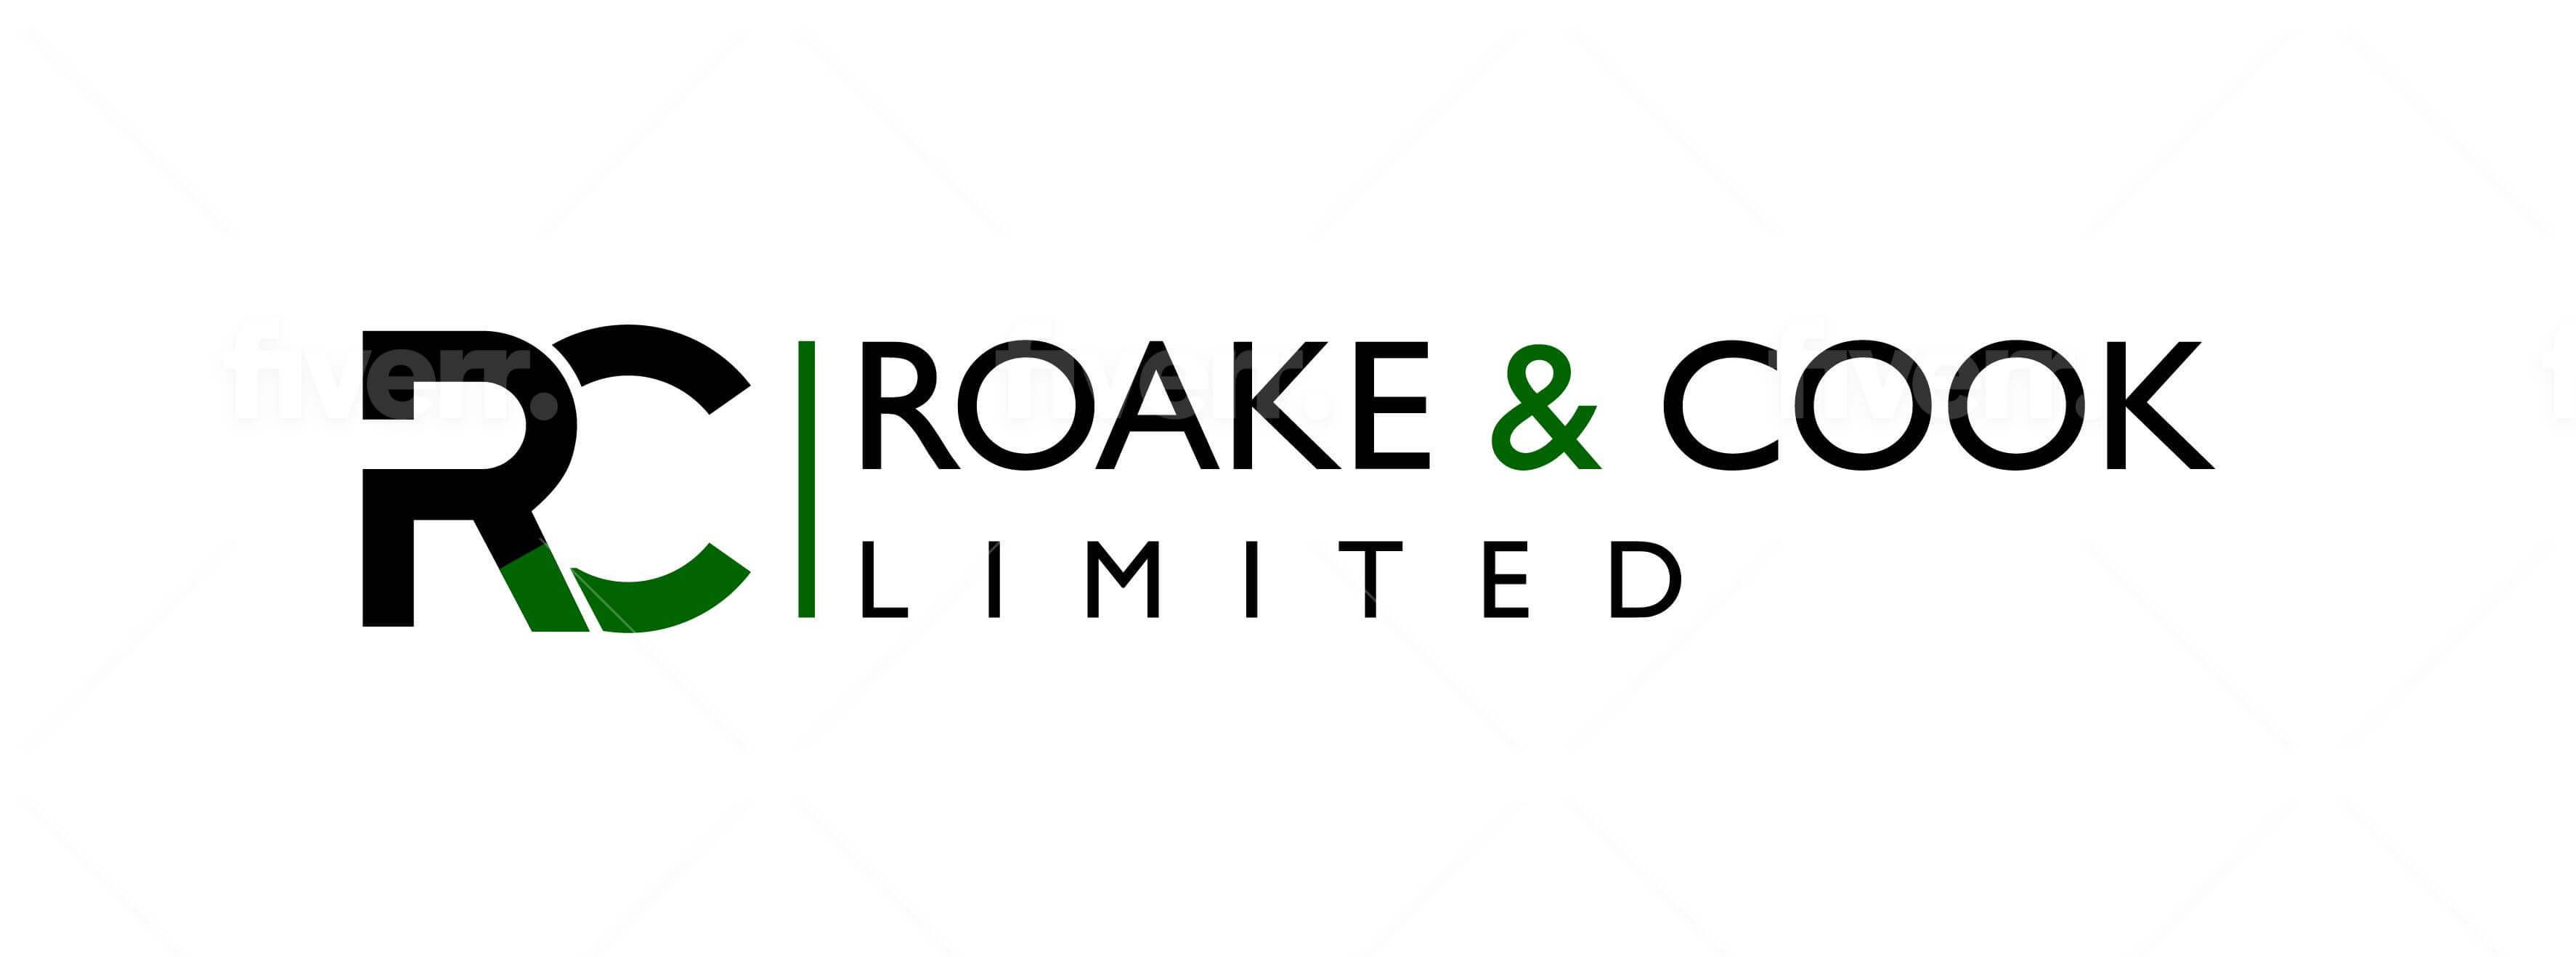 Roake & Cook Limited